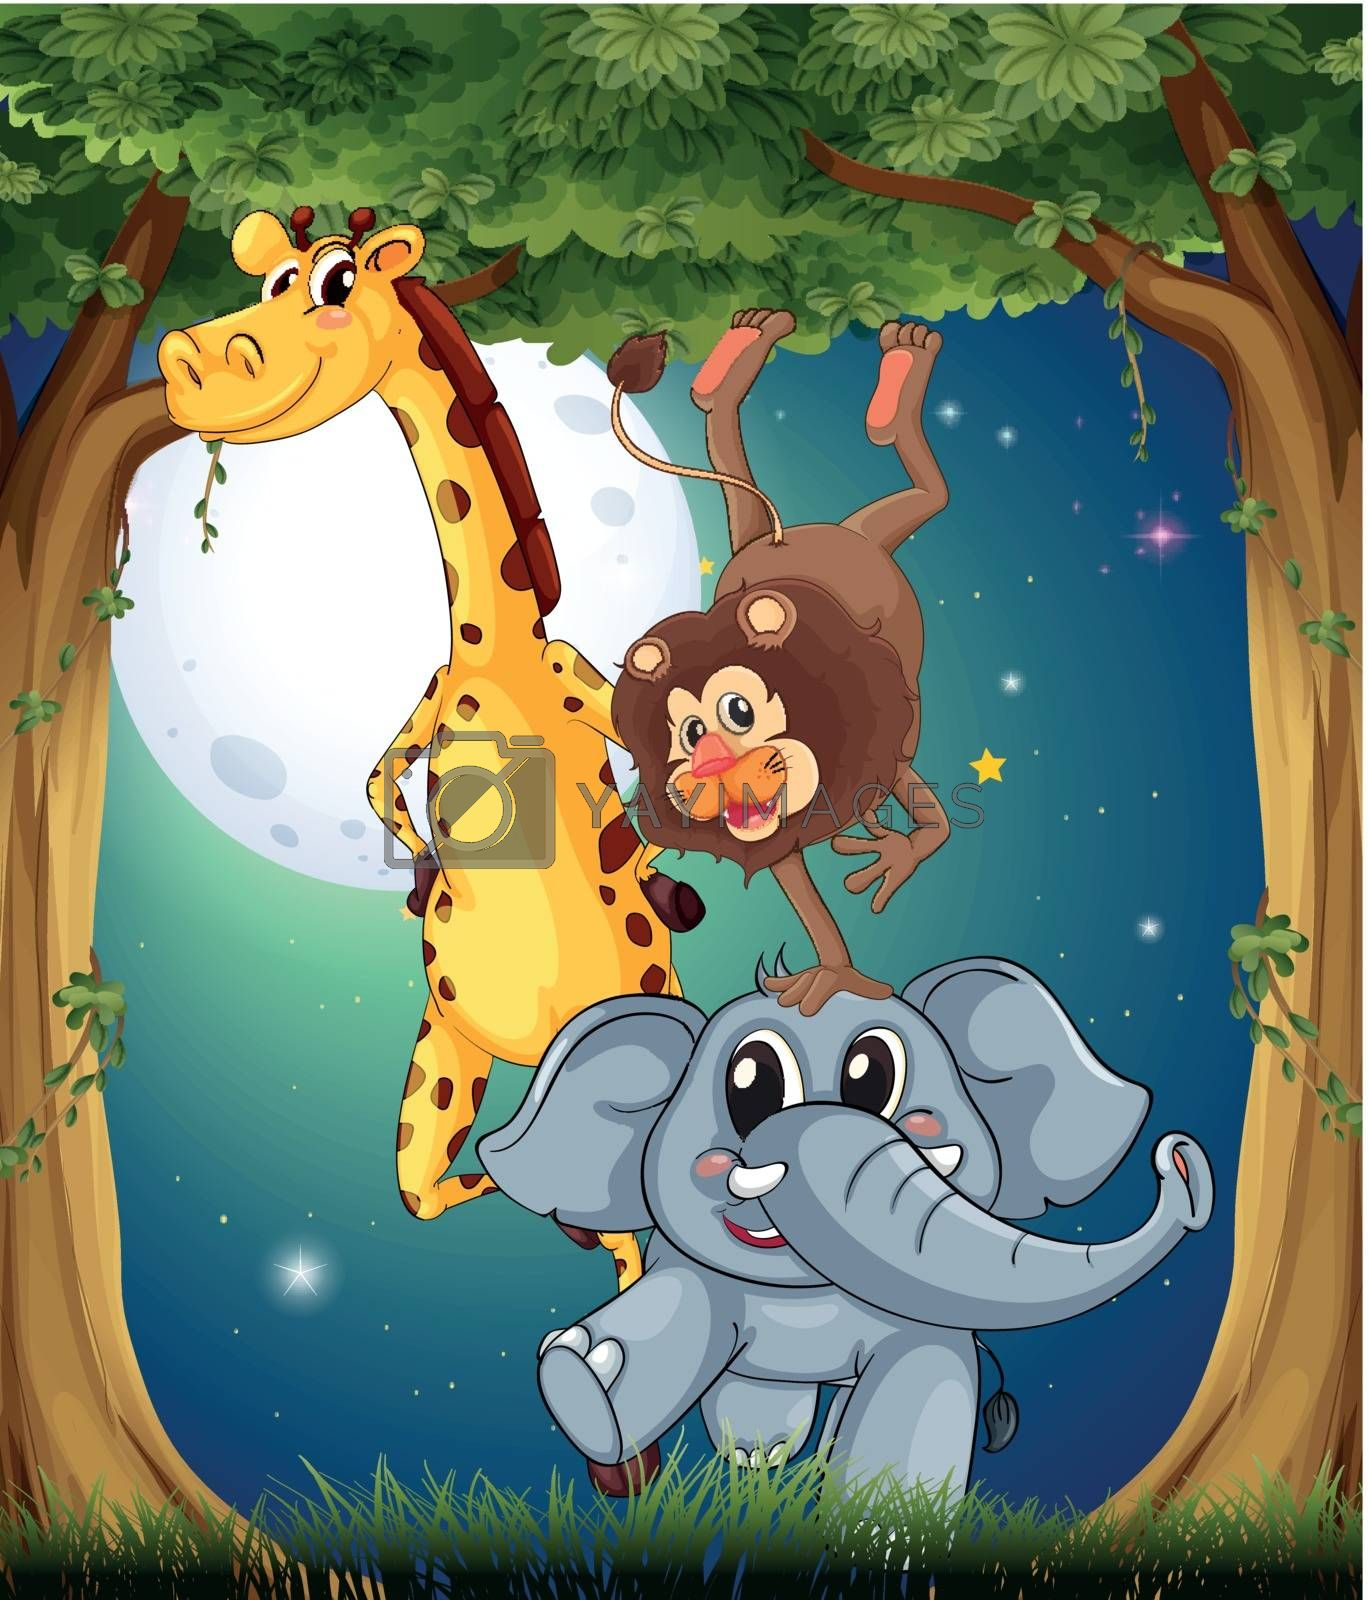 Illustration of the three playful animals in the forest under the bright fullmoon